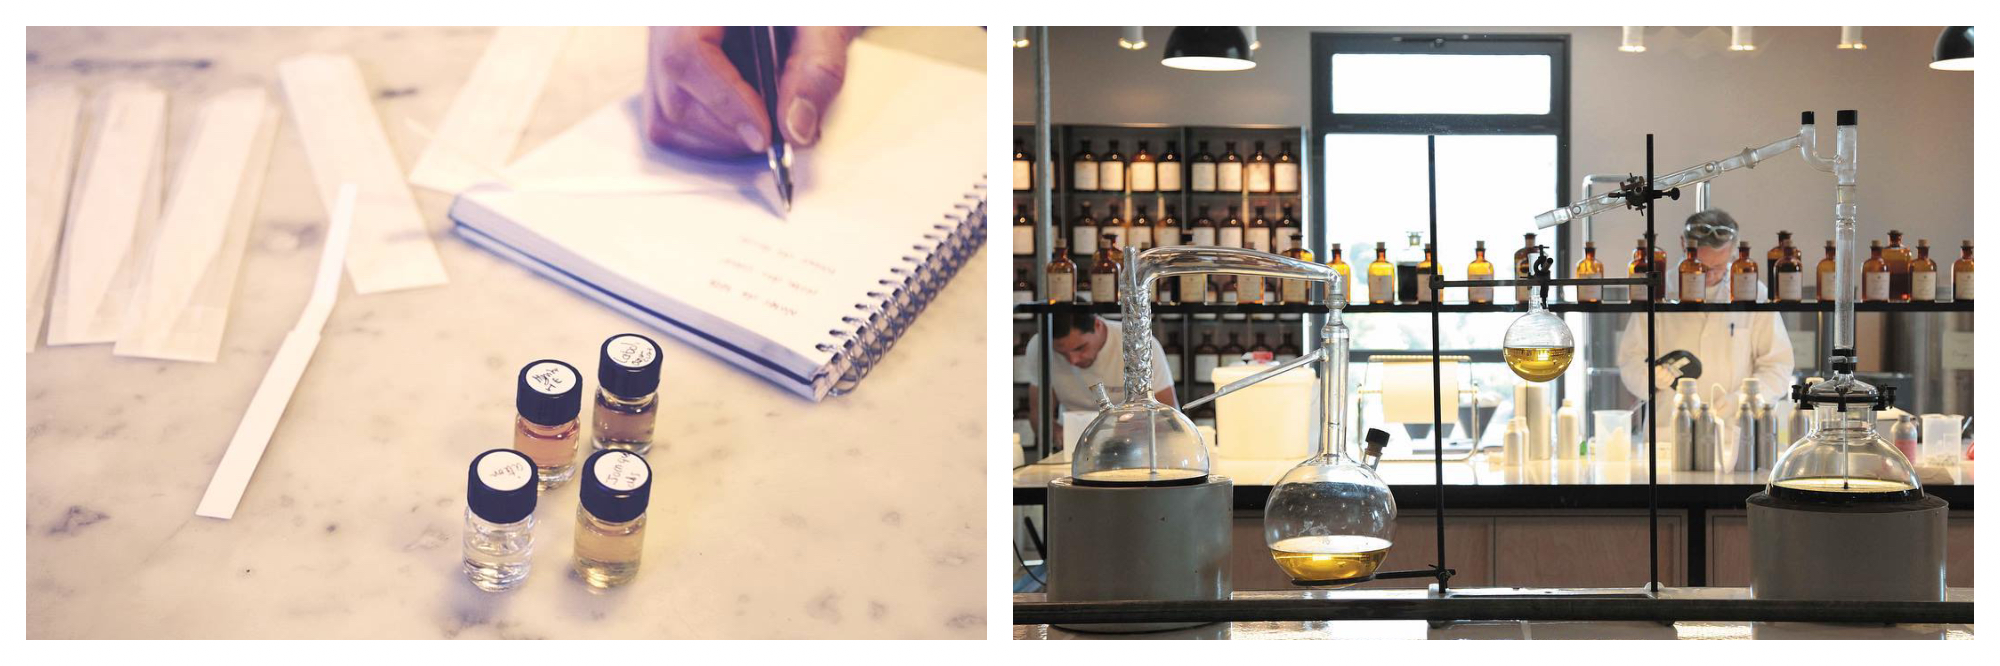 On left: After testing four different perfumes, a participate takes down notes at a workshop run by Rendez-Vous Parfum, a Paris-based company specializing in perfume walks, workshops, and sensory events. On right: Two perfumers carefully mixing scents in the workshop of Fragonard, a family-owned Paris perfumery, which also runs the Musée du Parfum in Paris.